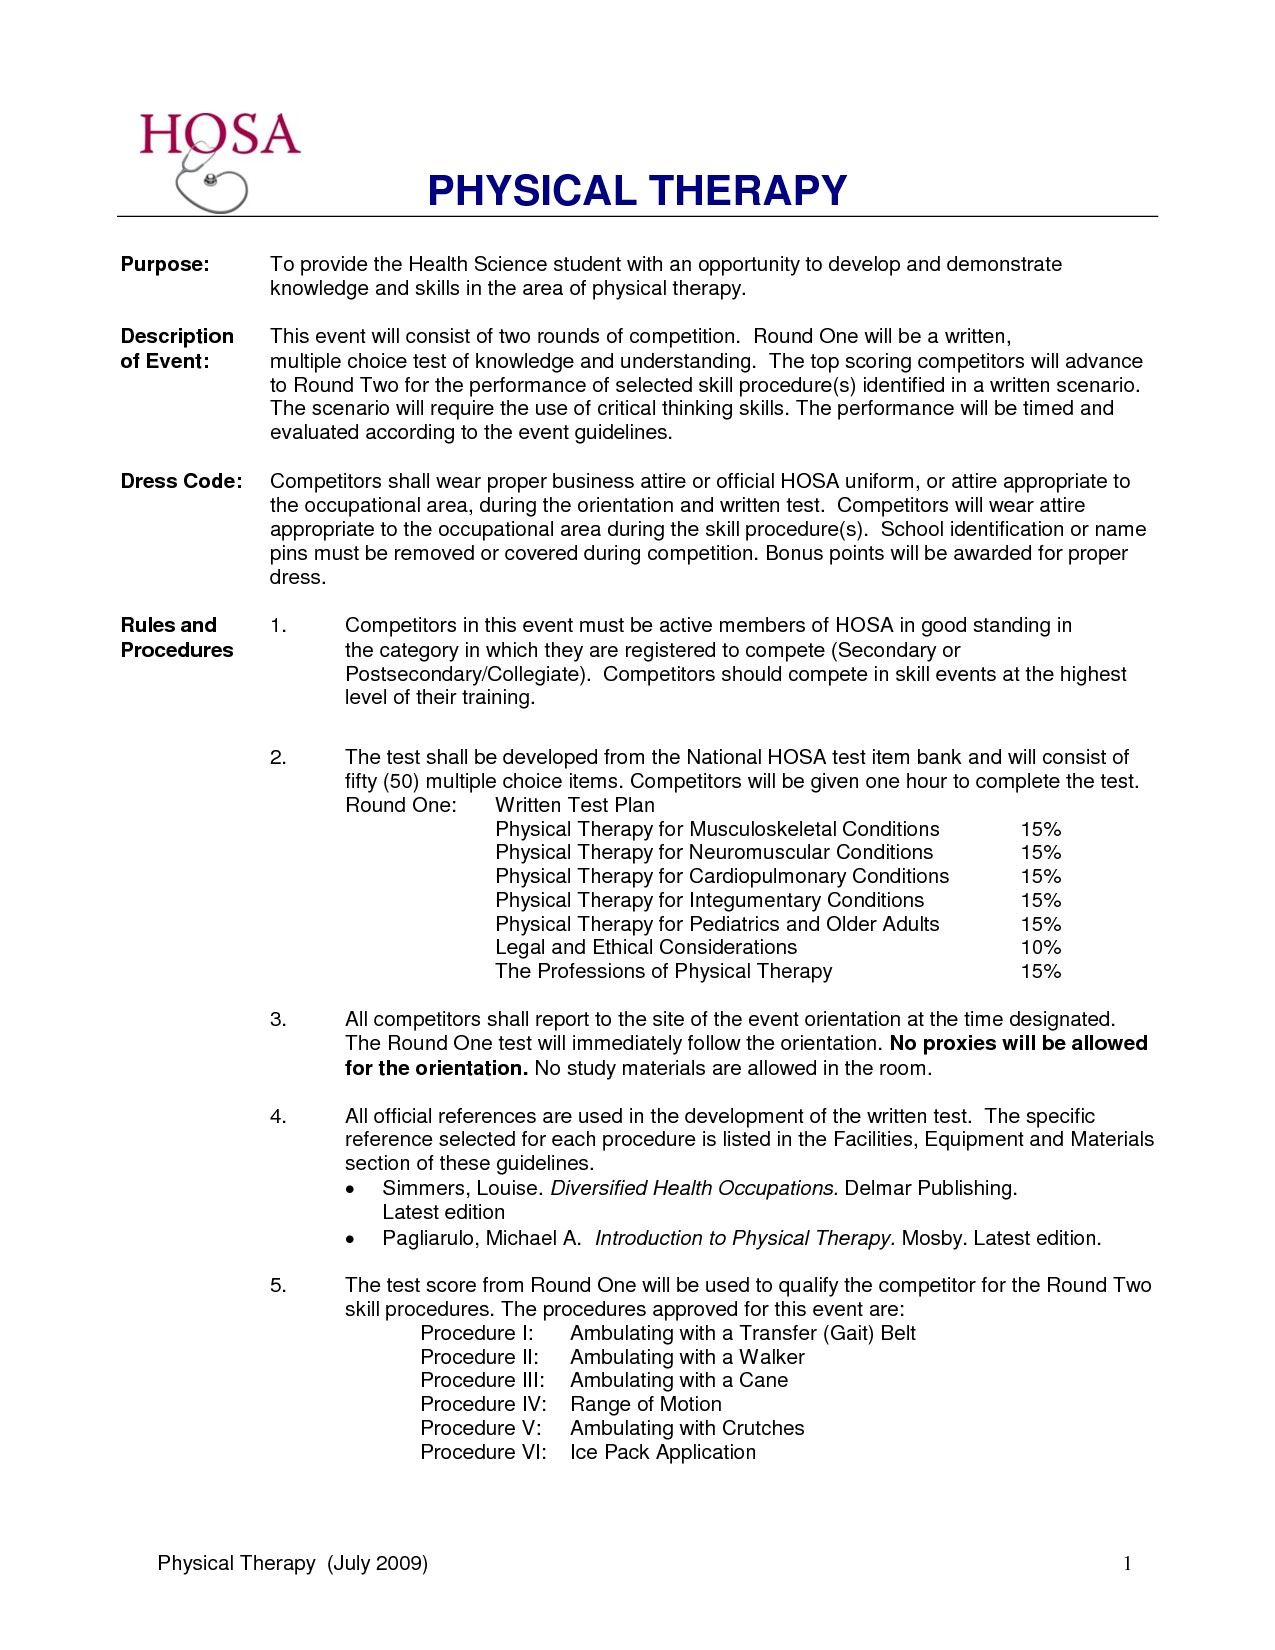 Physical therapy Aide Resume - Physical therapy assistant Resume Awesome Sample Pta Resume Free